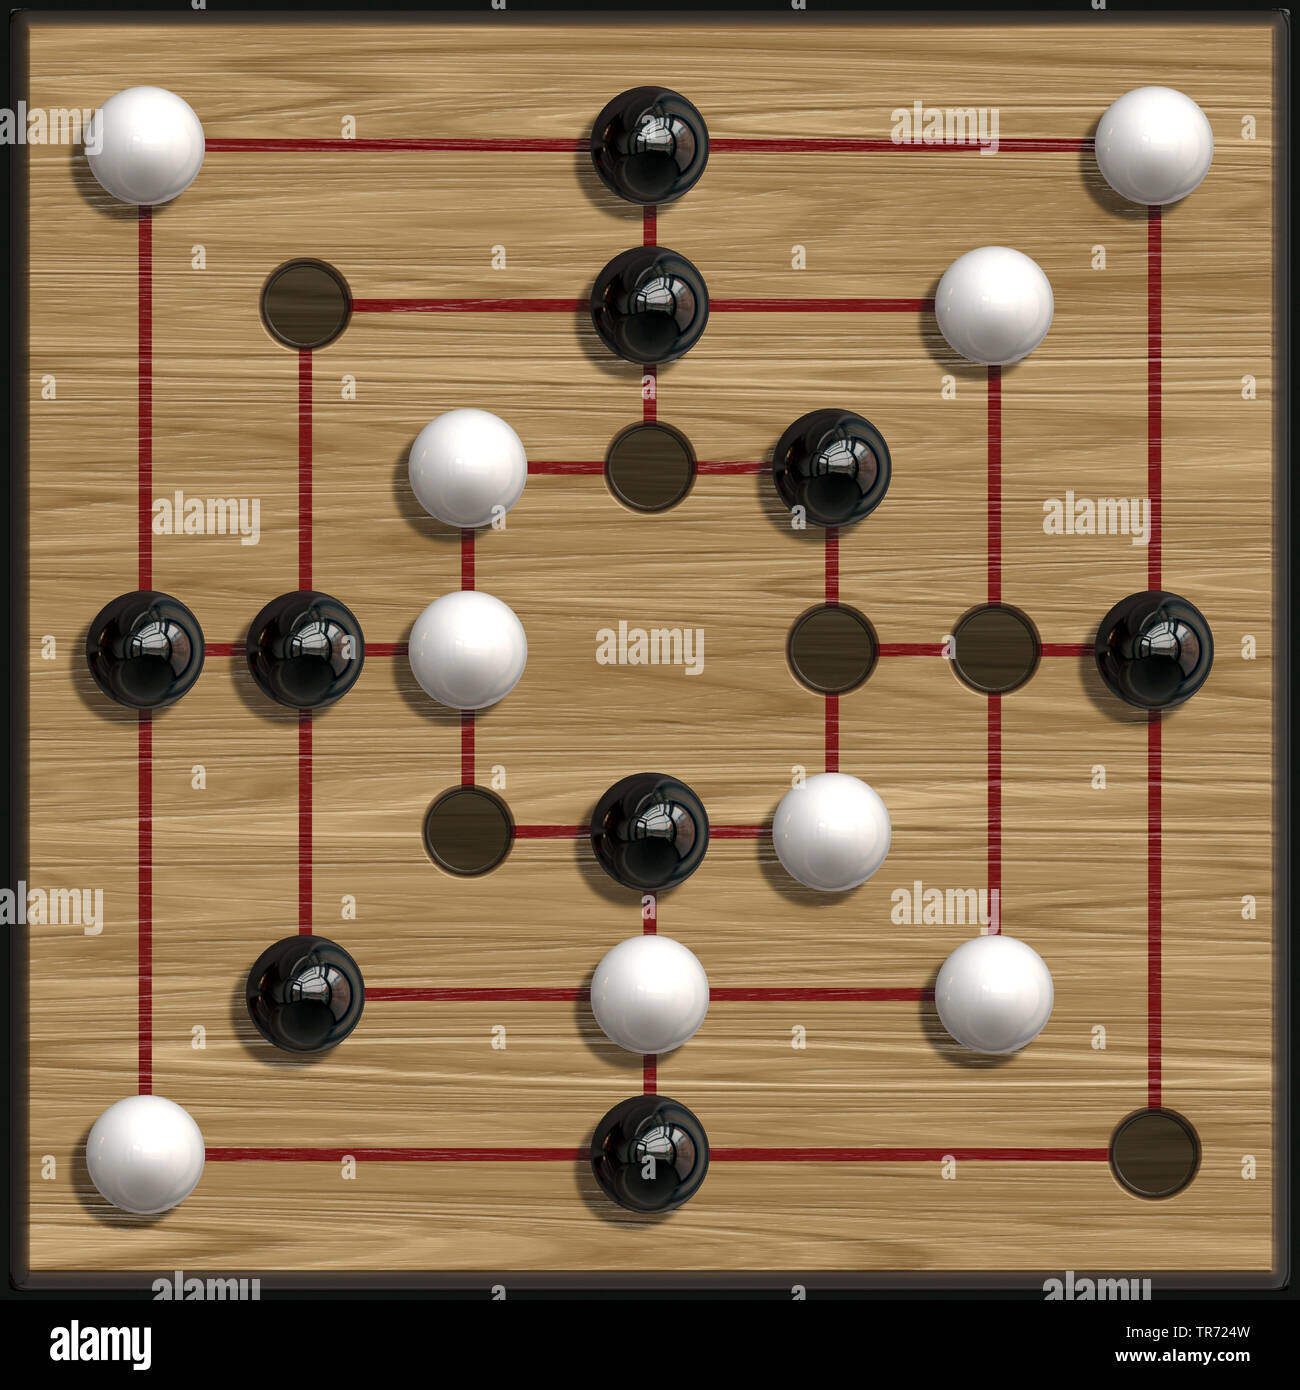 3D-Computergrafik, Darstellung eines Muehle-Spielbretts | 3D computer graphic, illustration of a nine-men's morris game board | BLWS495297.jpg [ (c) b - Stock Image